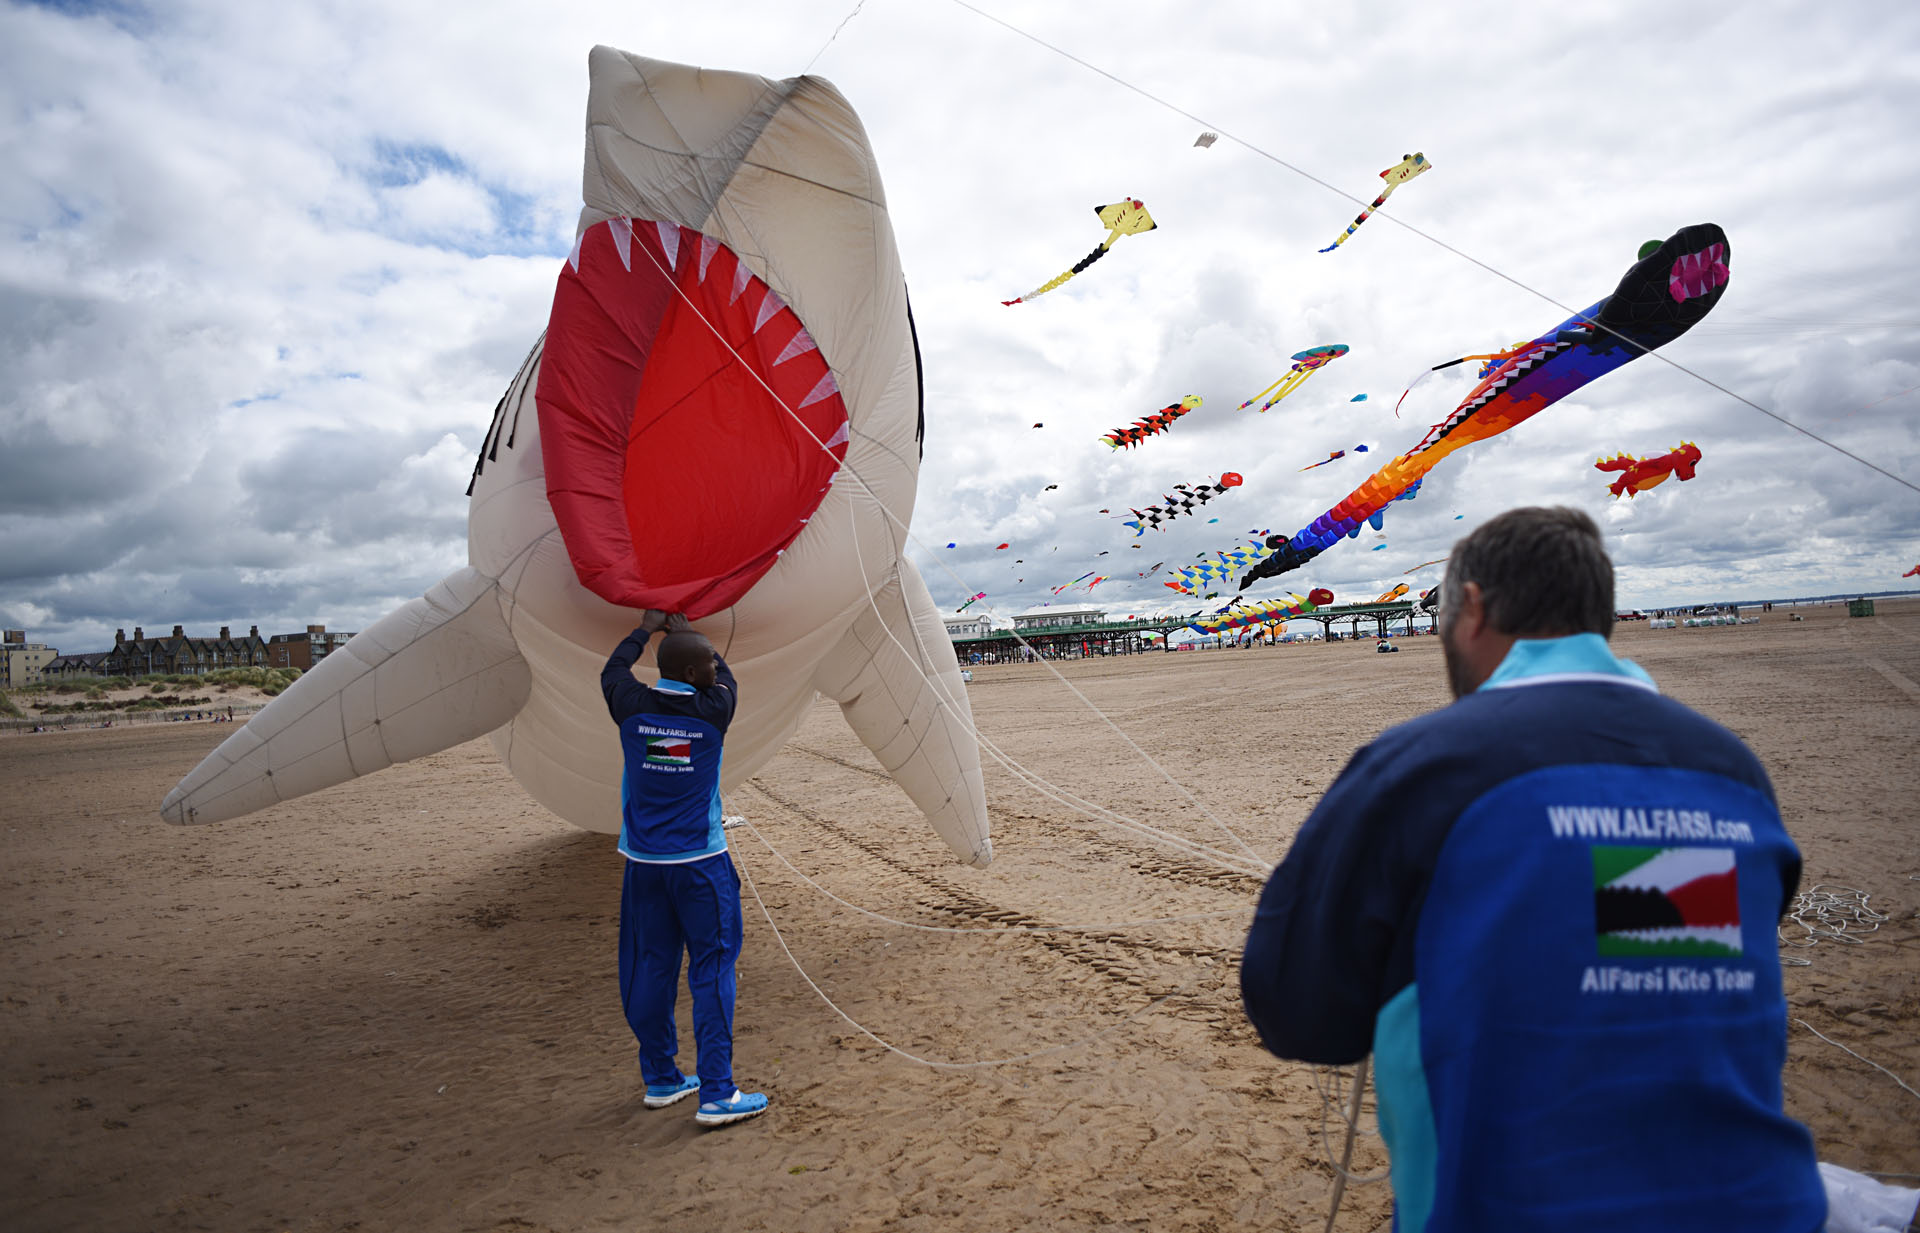 Members of the Kuwaiti Al Farsi Kite Team send up a shark kite as they participate in the St Annes Kite Festival on the seafront in Lytham St Annes, north west England on July 30, 2016. / AFP PHOTO / OLI SCARFF